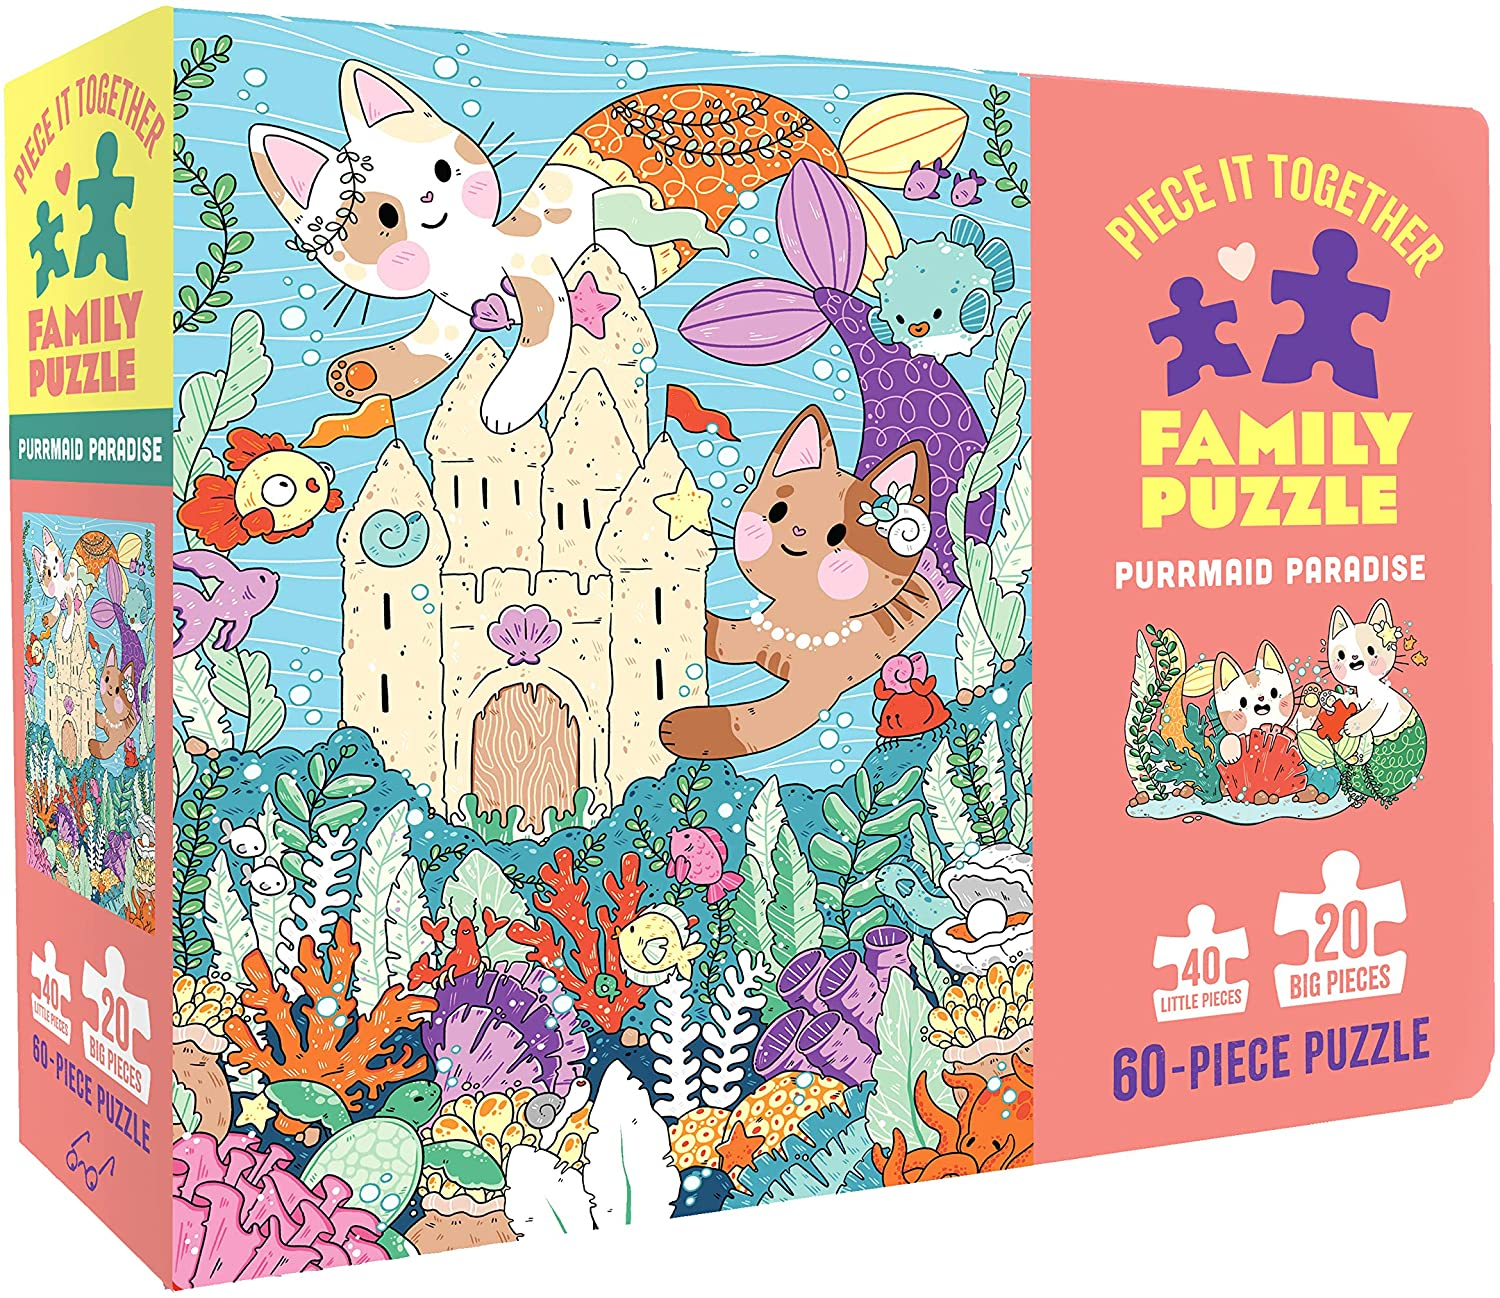 Chronicle Books Piece It Together Family Puzzle: Purrmaid Paradise